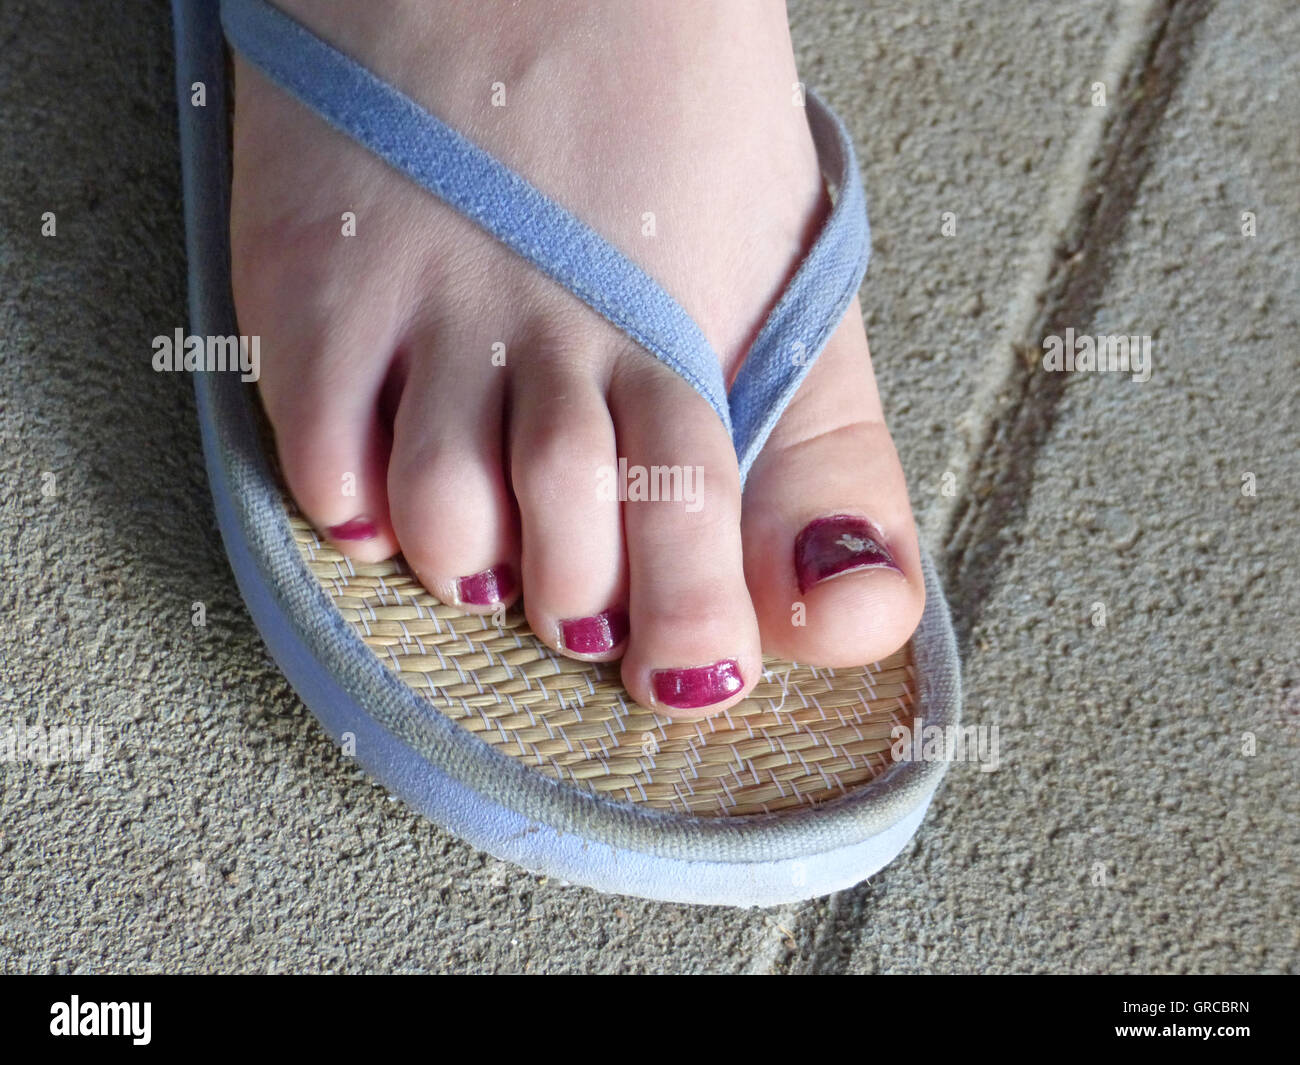 Foot Of A Woman In A Flip-Flop - Stock Image